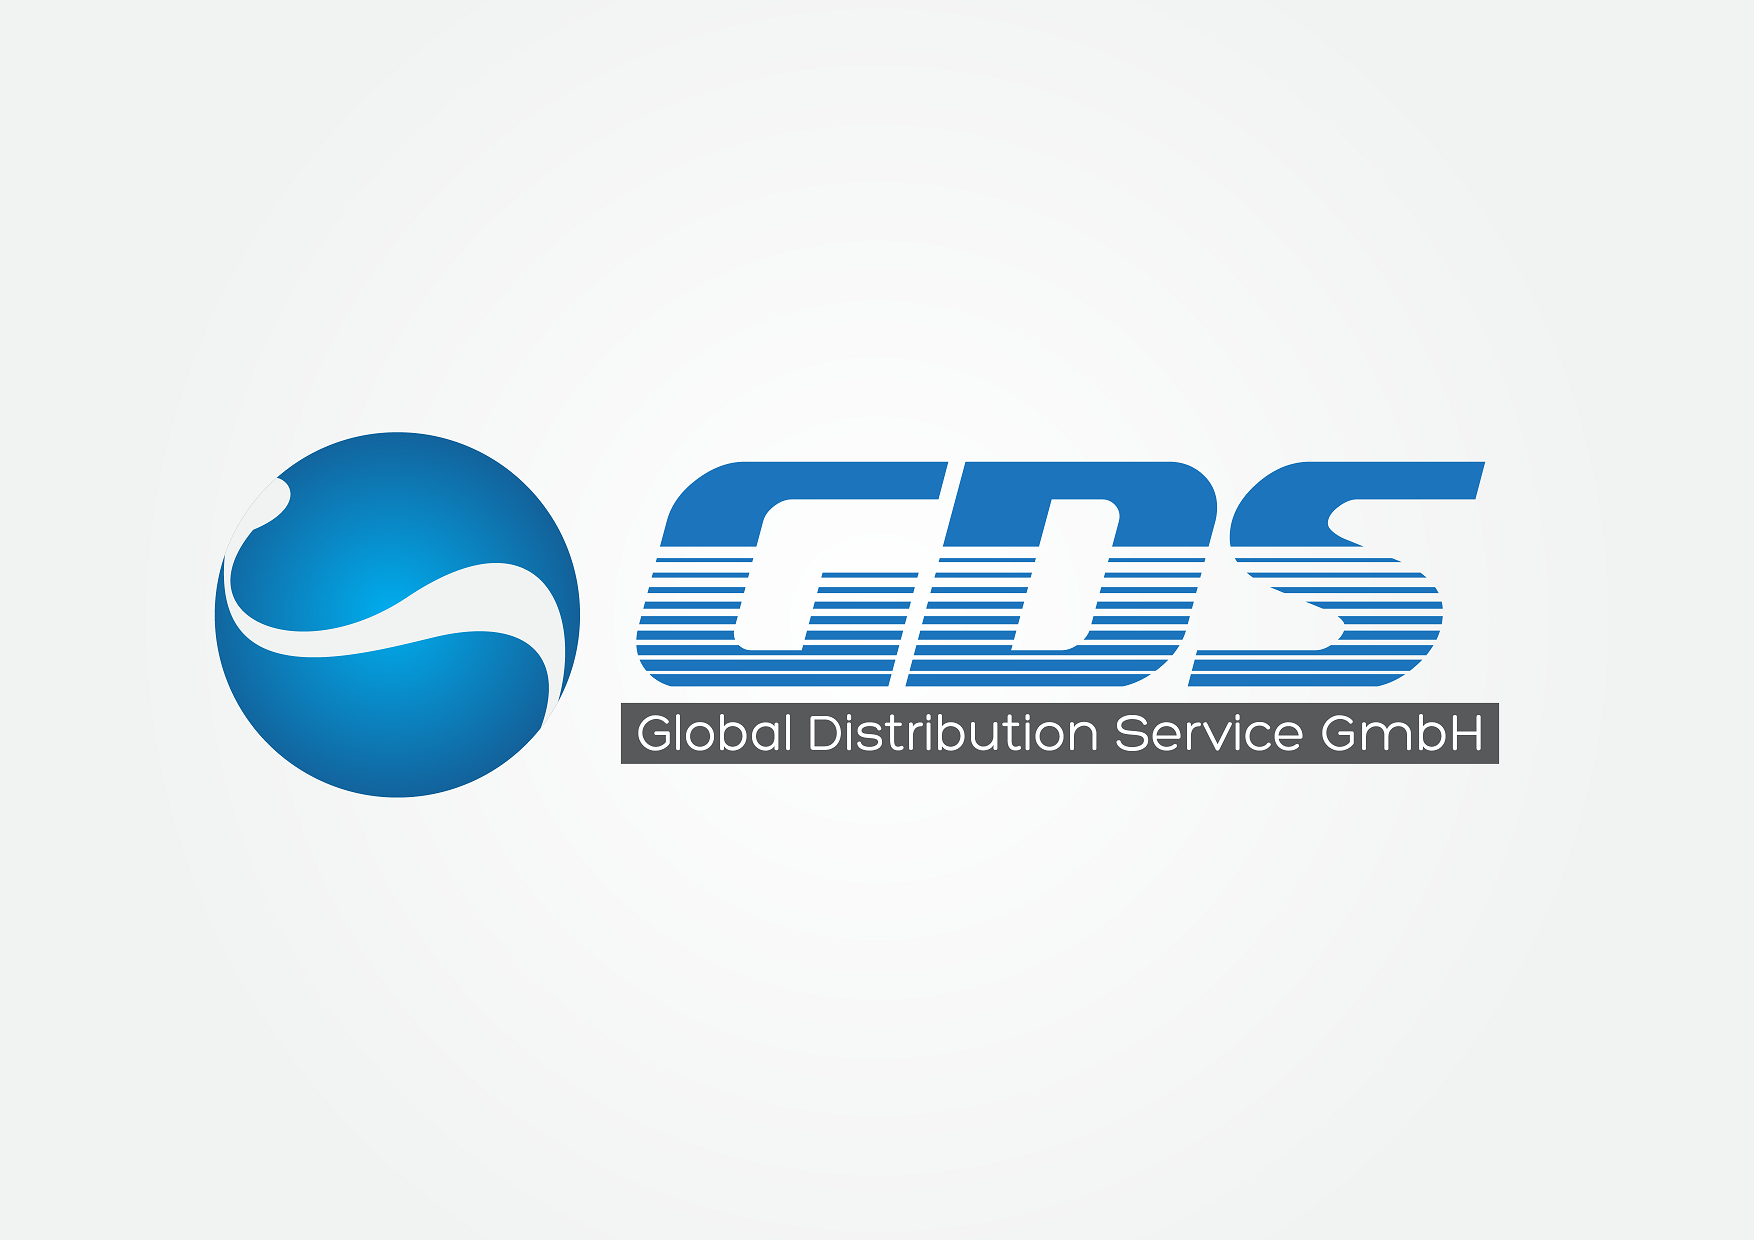 Gds global distribution service gmbh company logo font for Burodesign gmbh logo